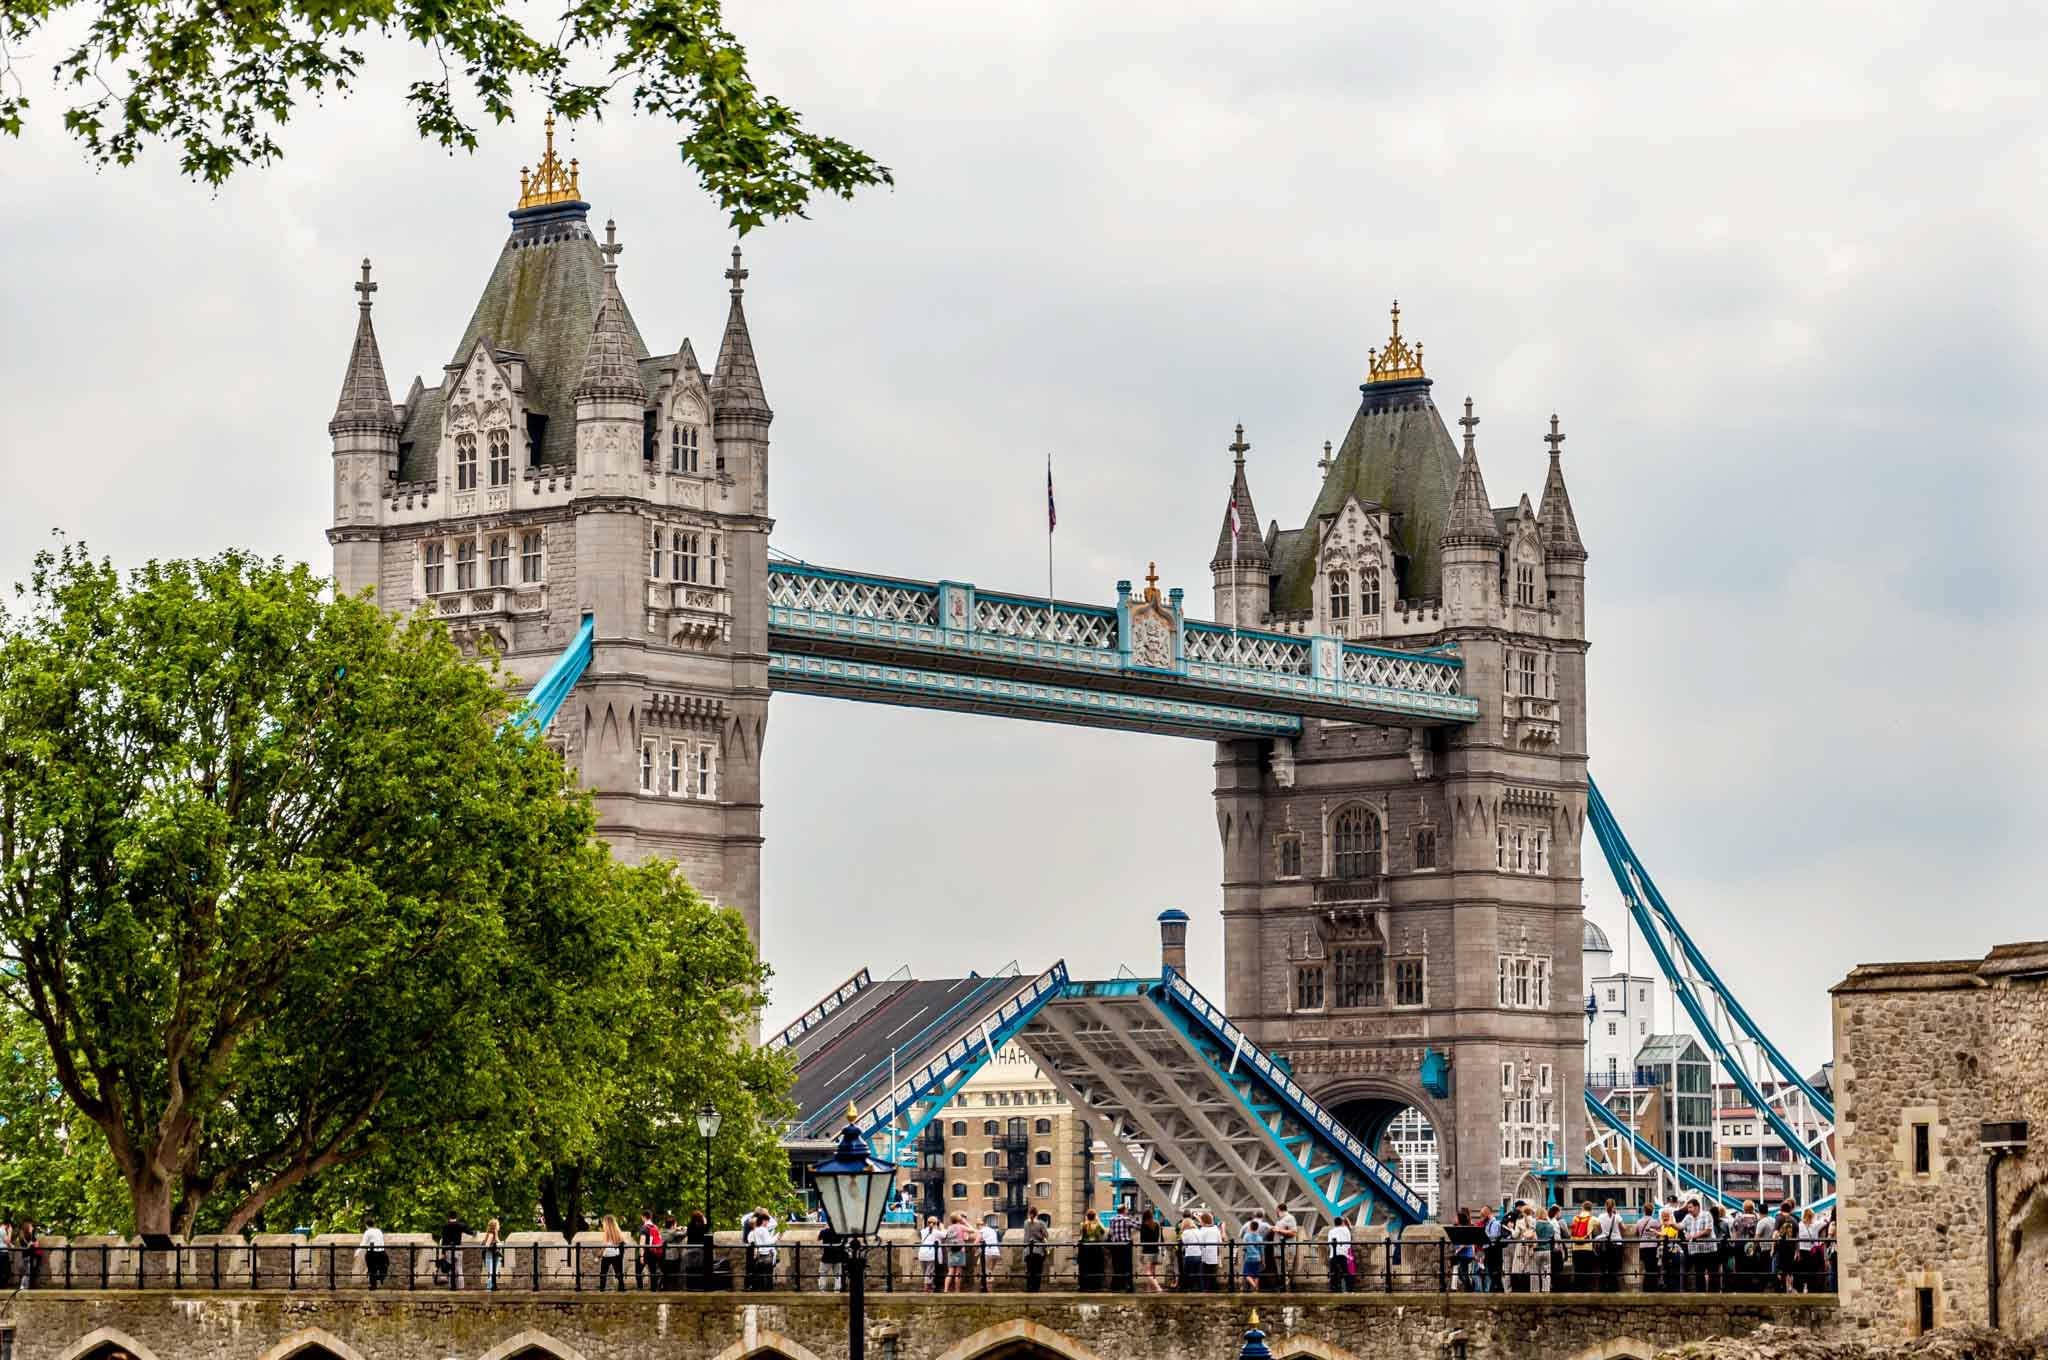 The Tower Bridge as viewed from the Tower of London - the final stop on your Heathrow Layover itinerary.